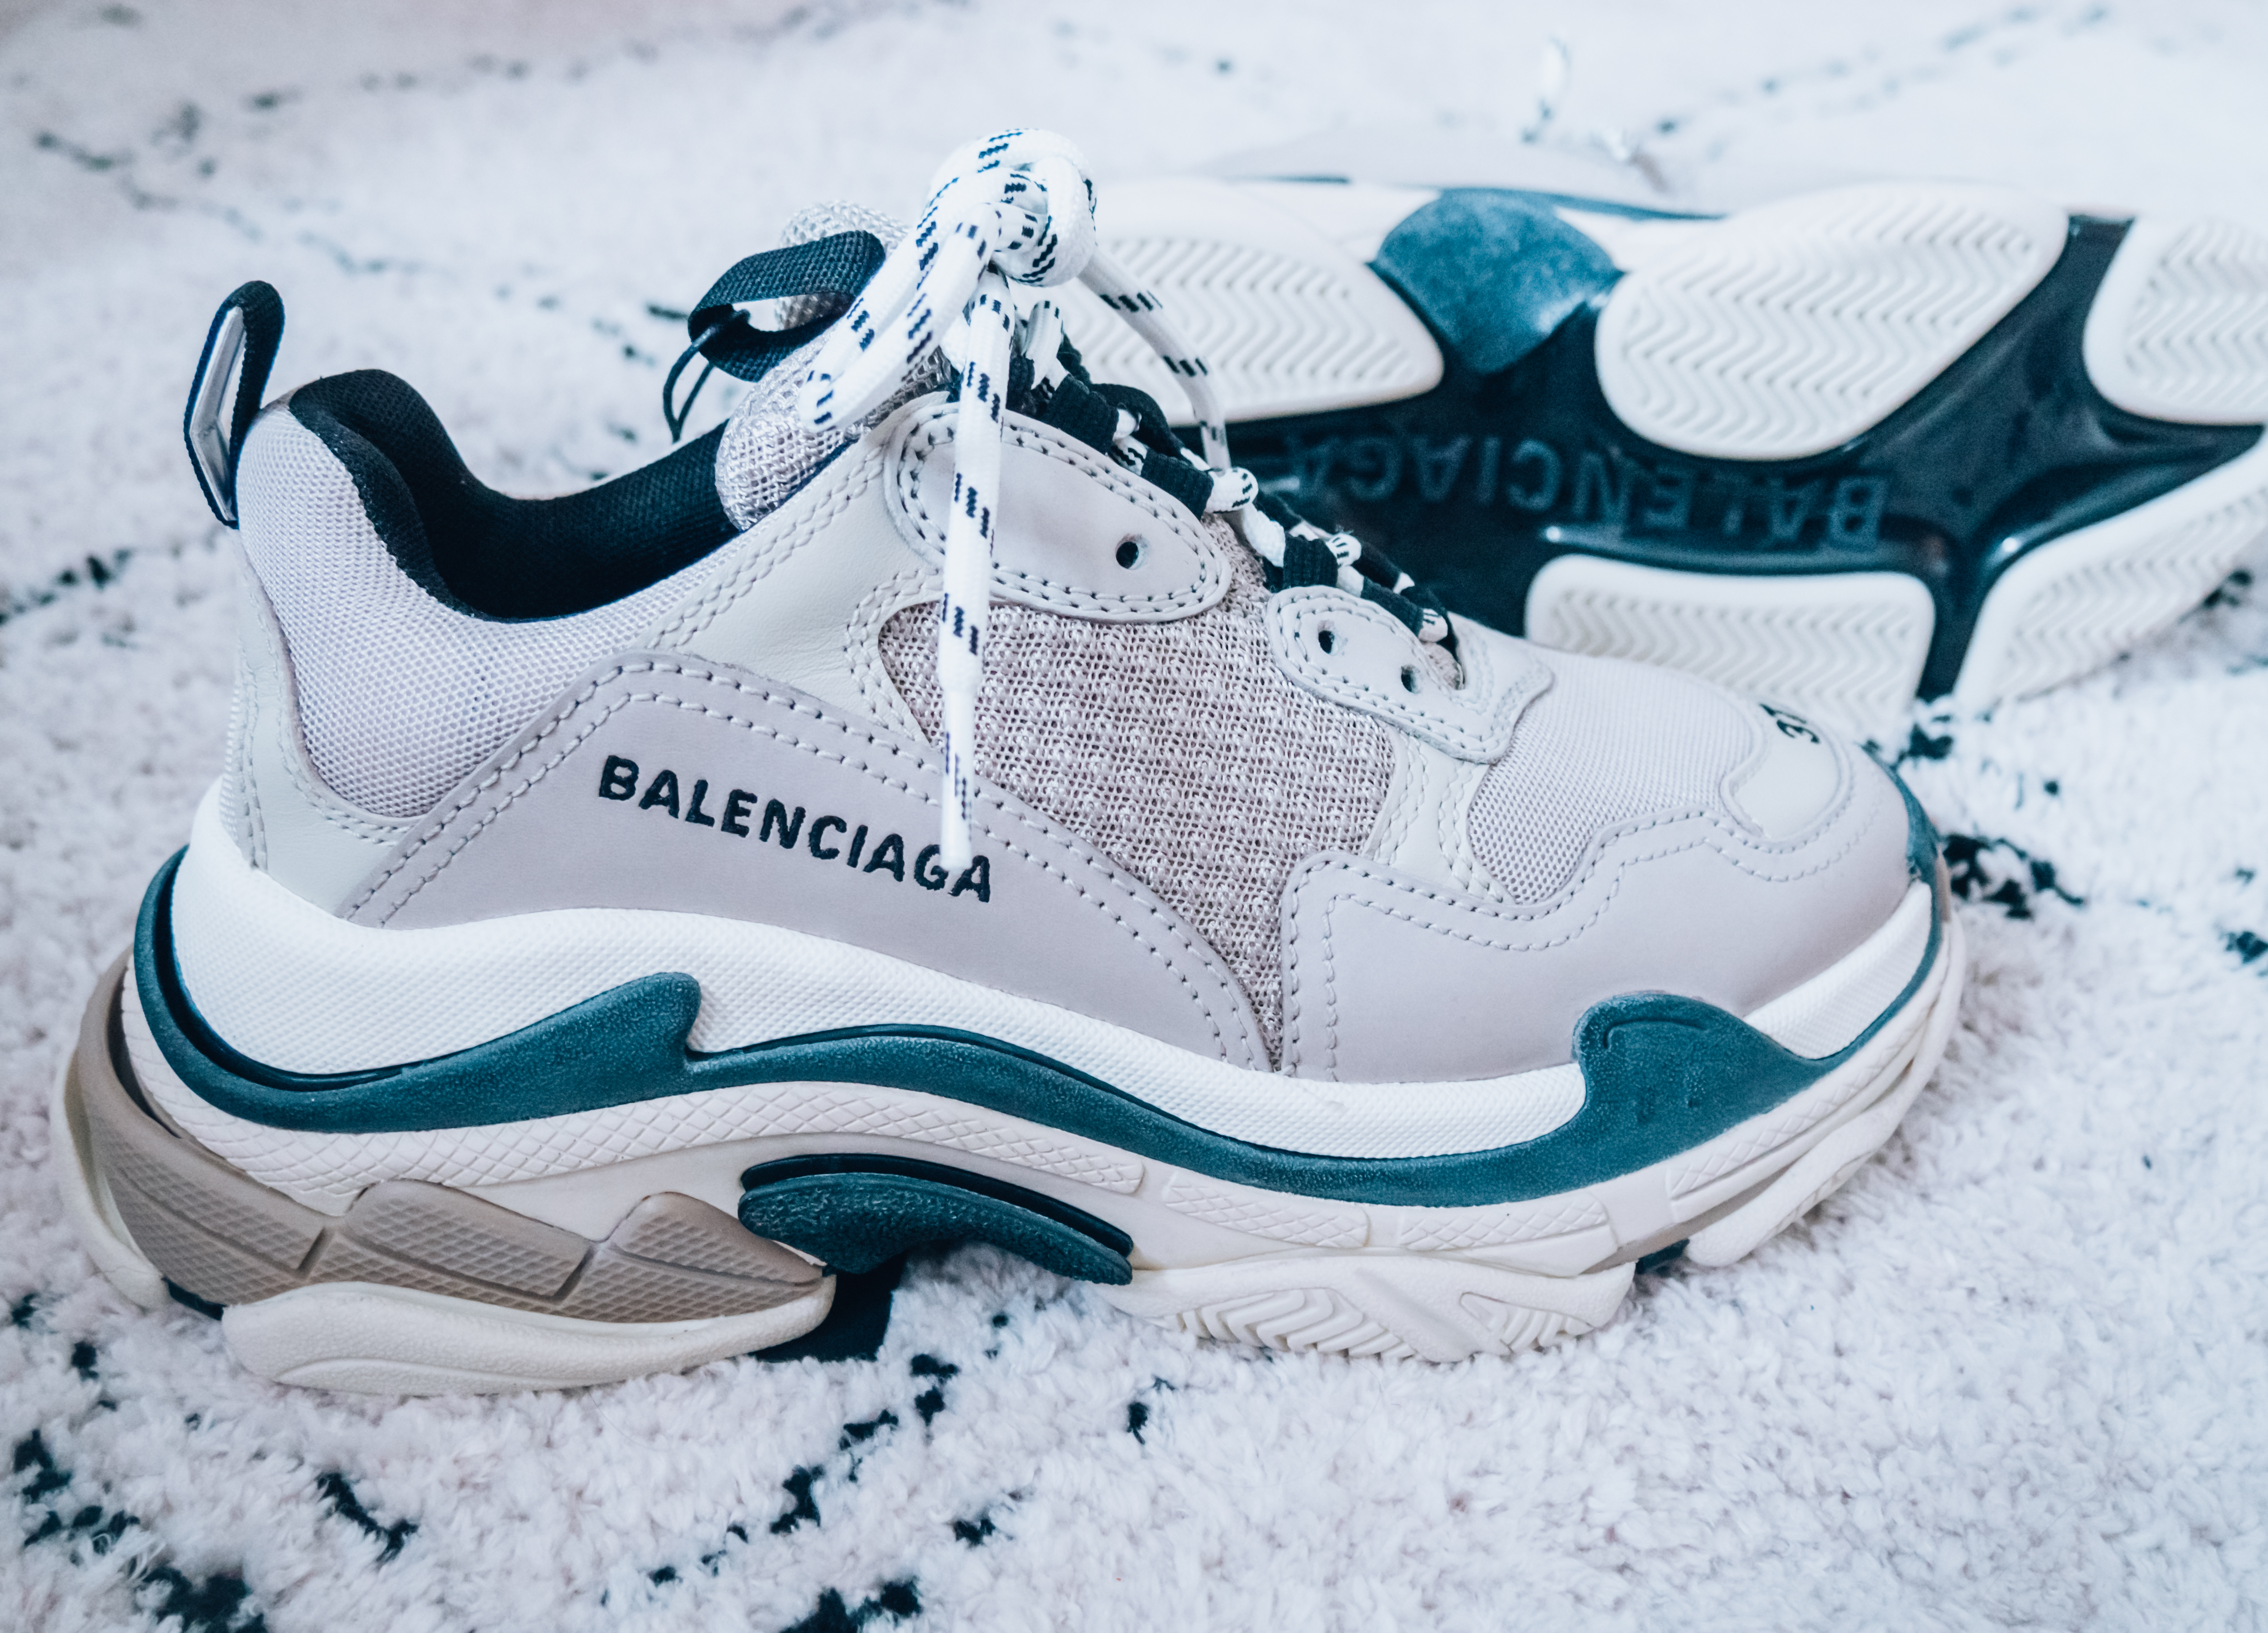 Balenciaga Shoes Track Sneakers Womens Size 39